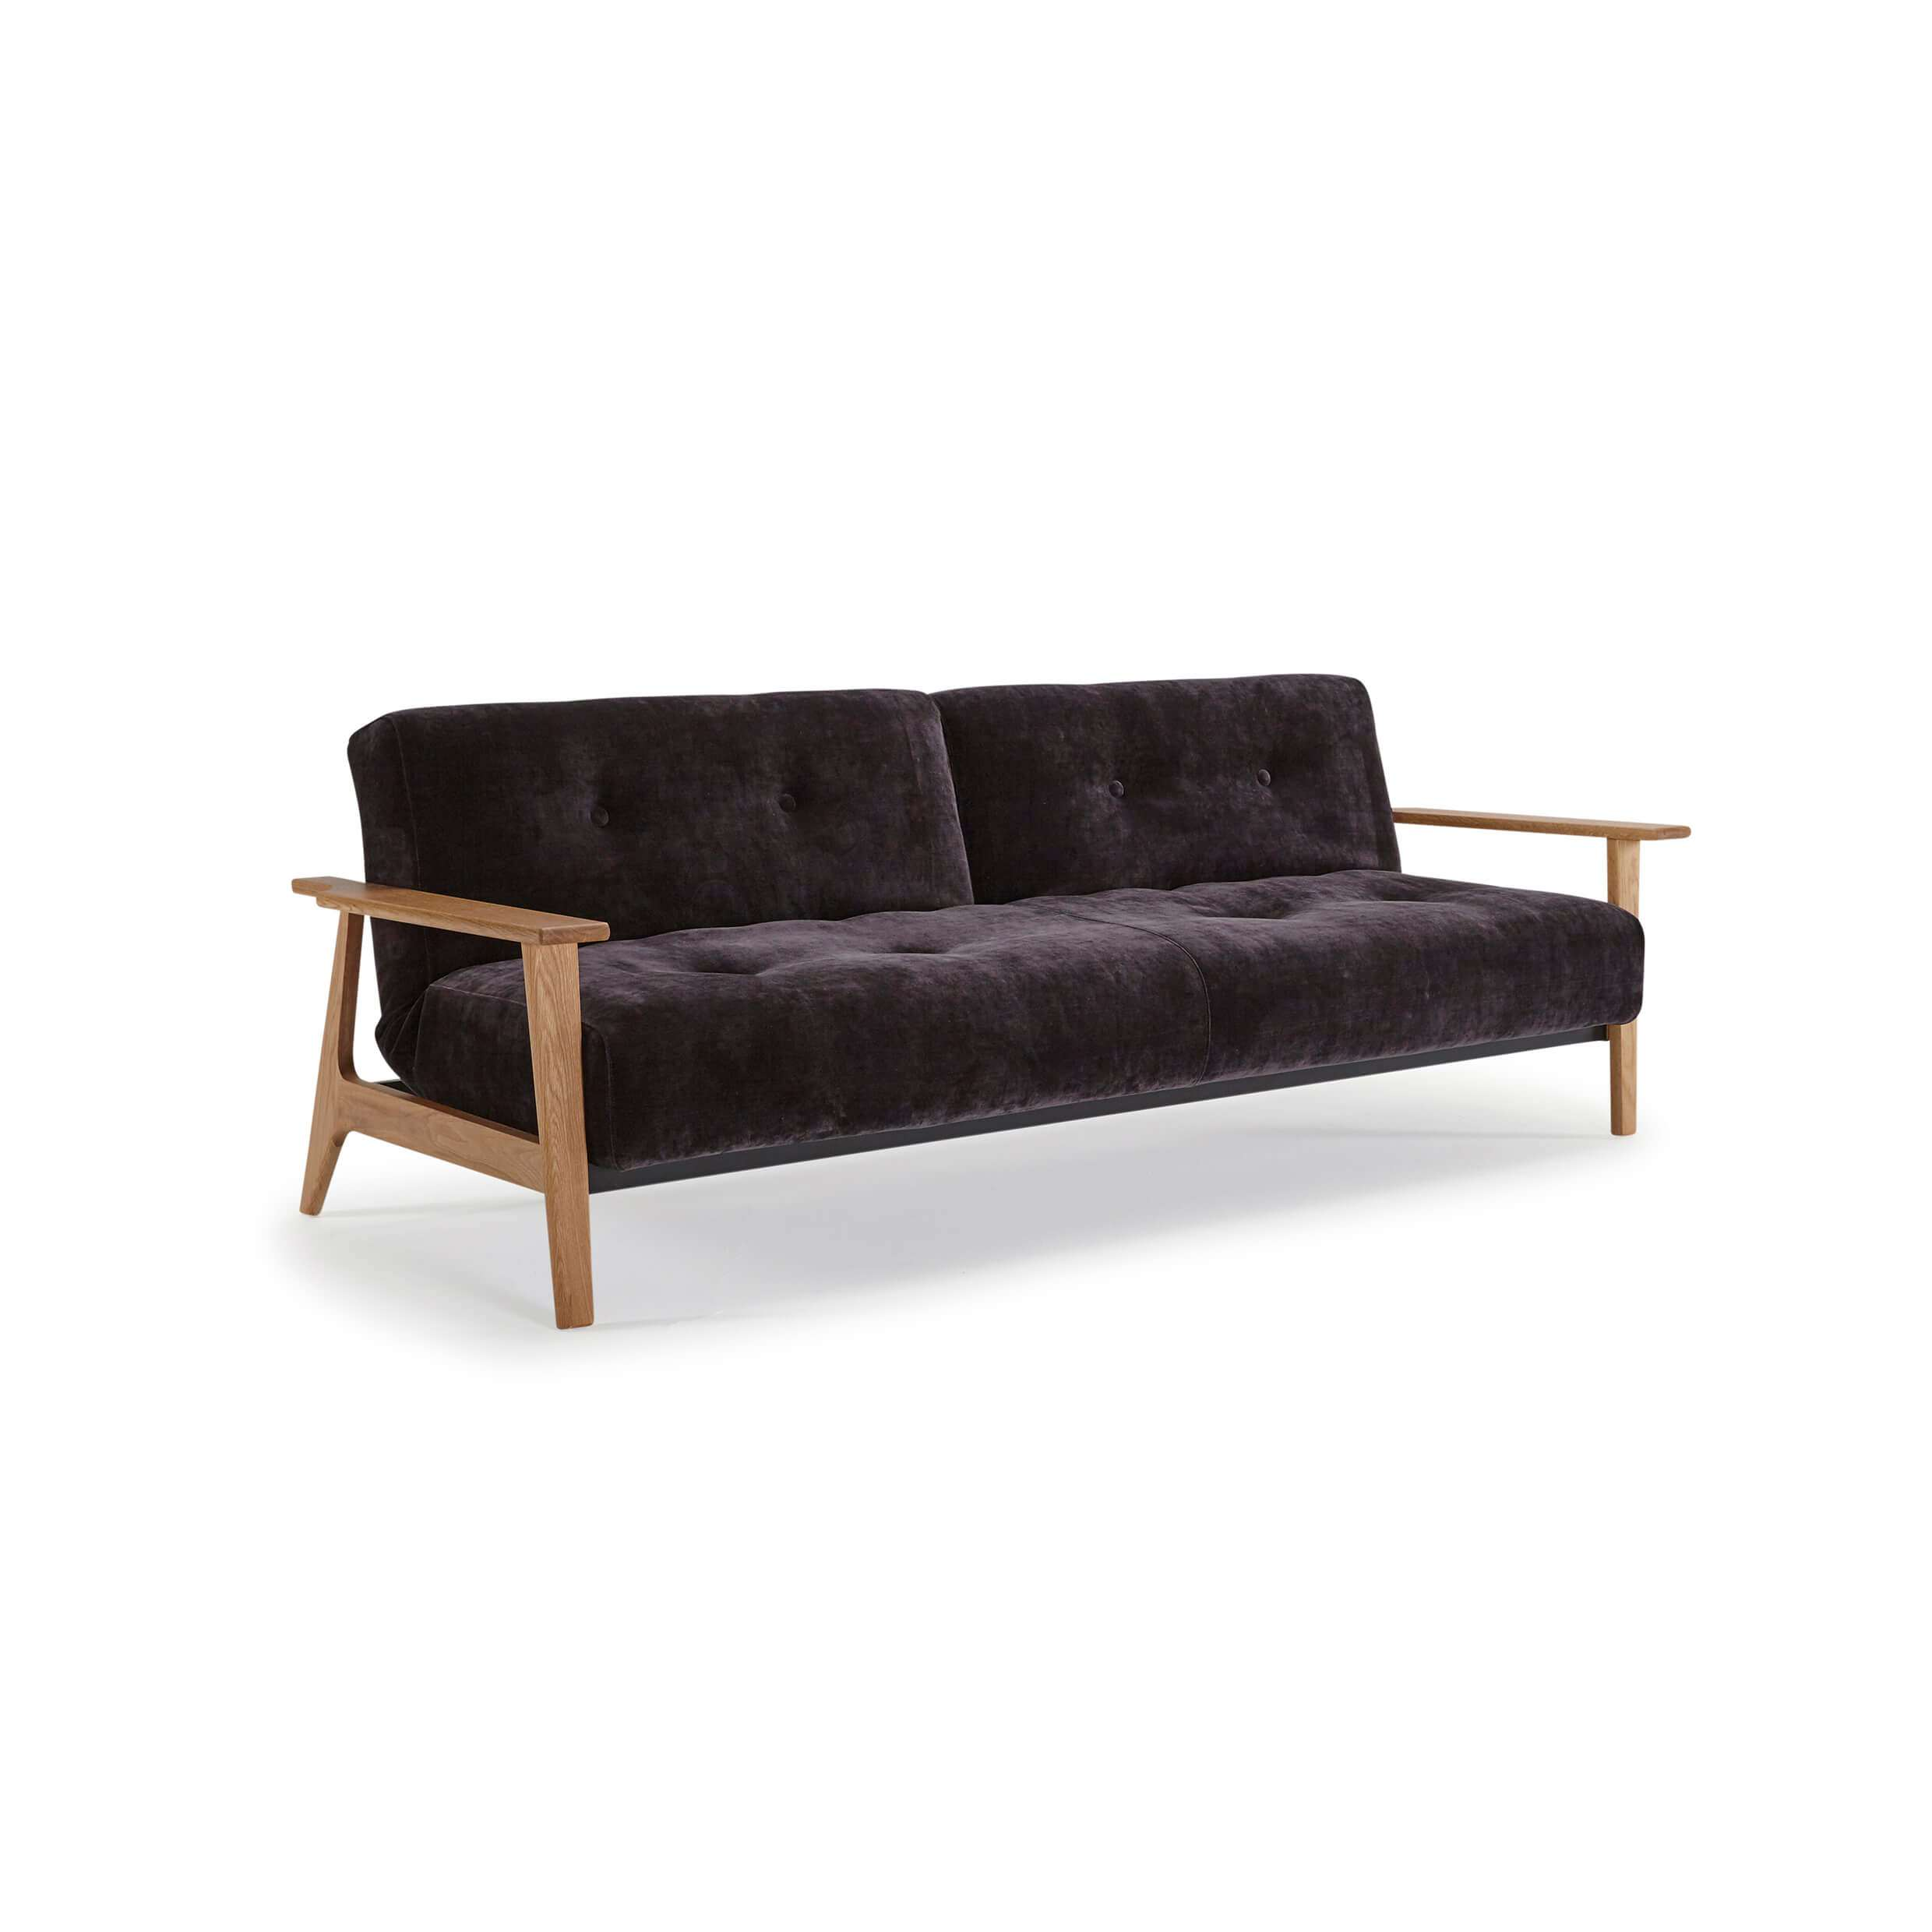 lounger chaise futon multiple colors formidable also navy emily convertible of